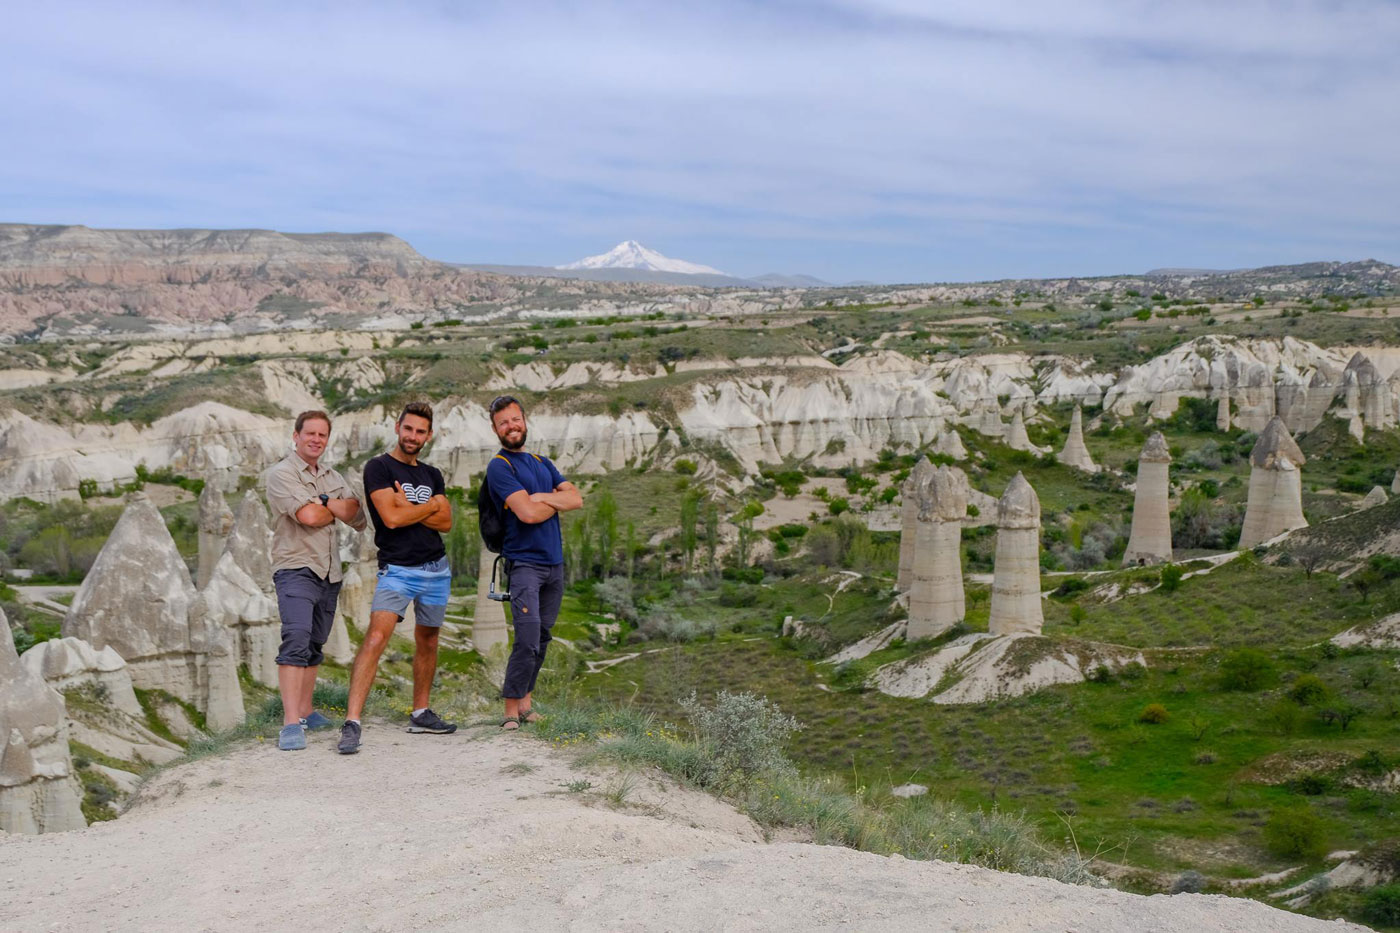 Turkey cycling, Arthur, Rémi and Alex in a valley in Cappadocia. Cycling Turkishy, Arthur, Rémi and Alex in a valley of Cappadocia.